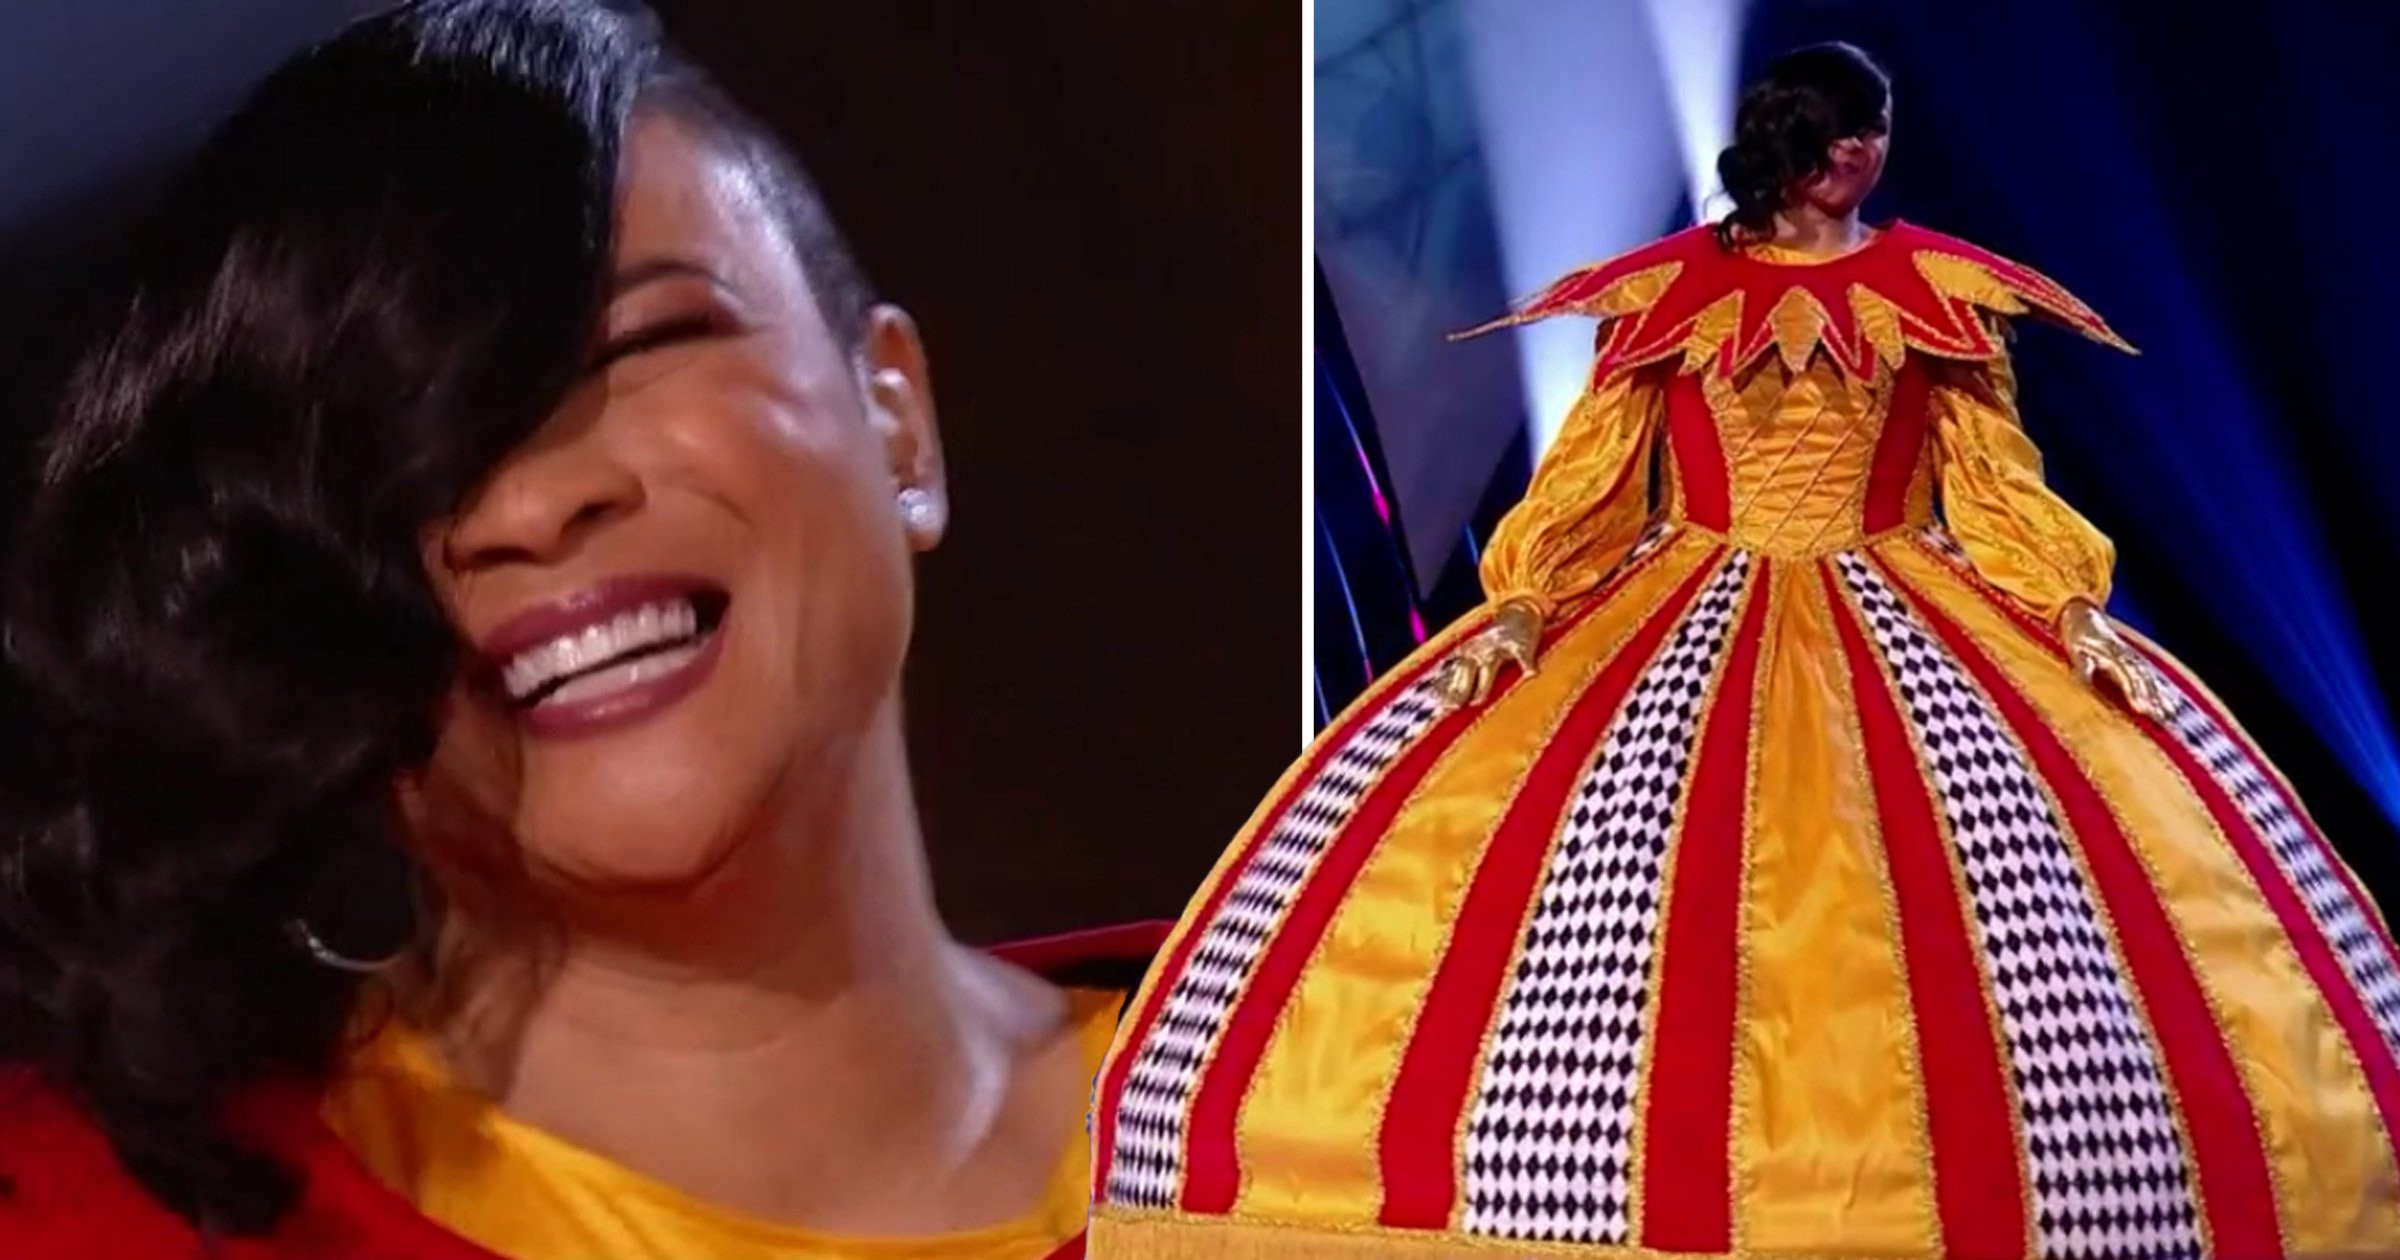 The Masked Singer's Gabrielle had panic attacks in the Harlequin costume: 'Giving birth was easier'